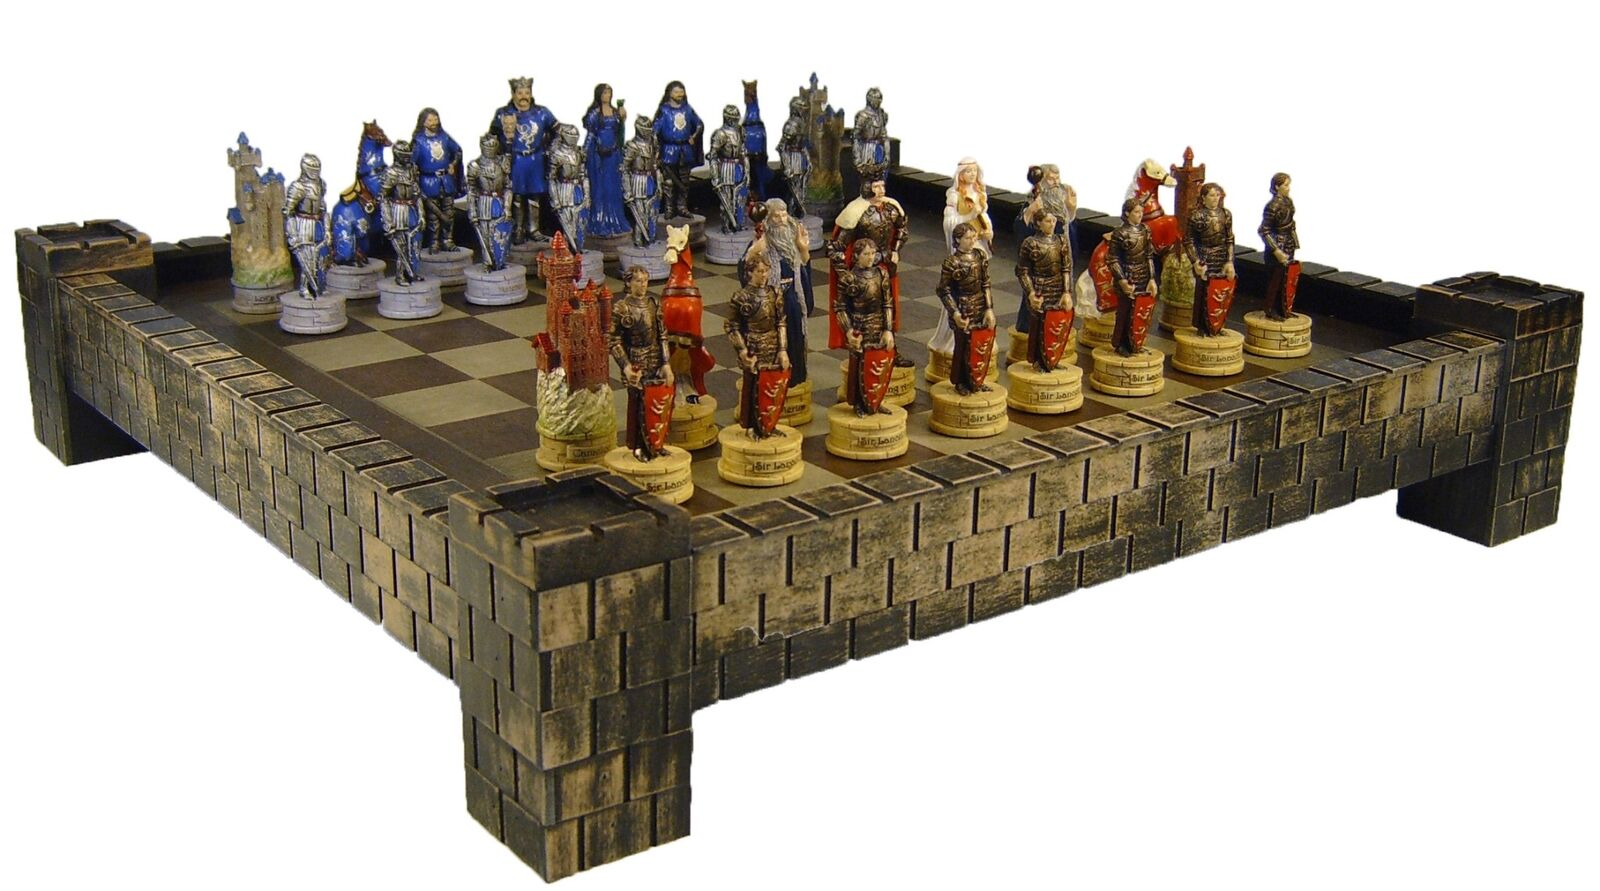 MEDIEVAL TIMES Camelot KING ARTHUR   Sir Lancelot Knights Chess Set CASTLE Board